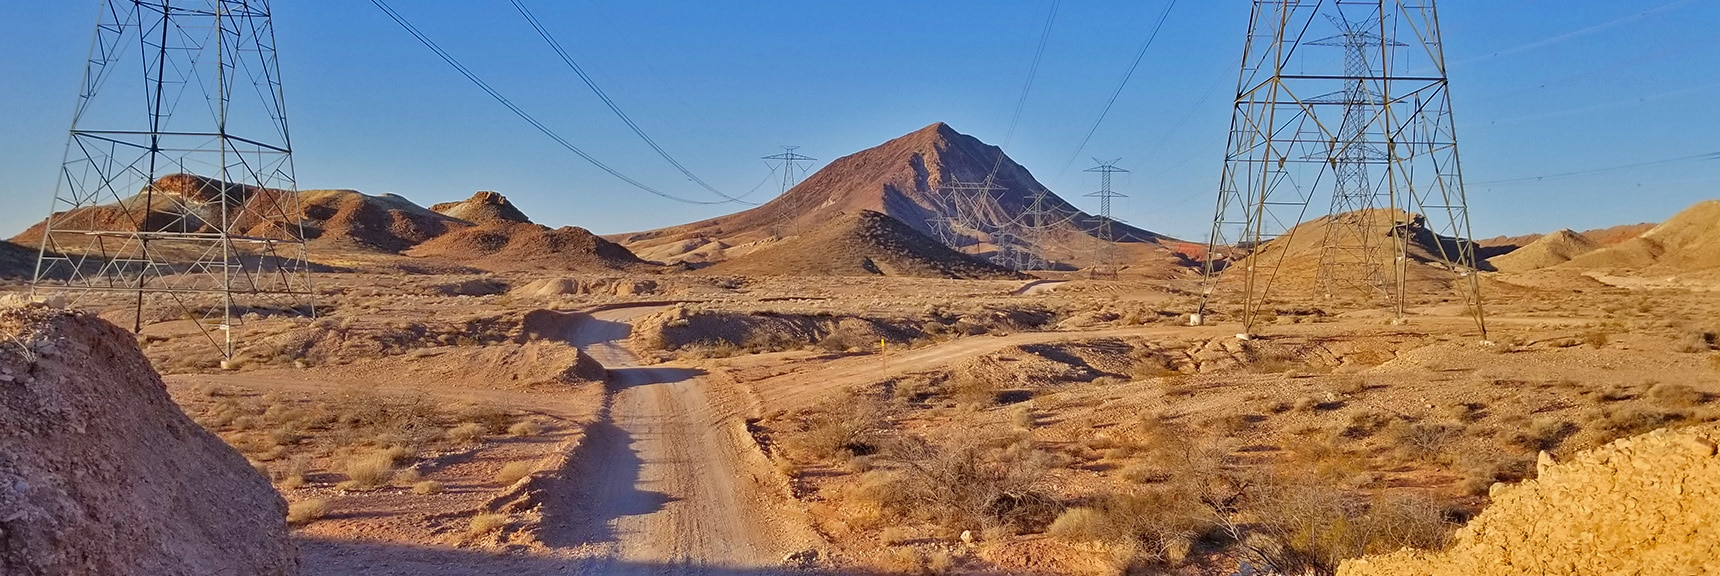 You Can Hear the Crackling of the Massive Power Lines Along This Route. | Lava Butte | Lake Mead National Recreation Area, Nevada